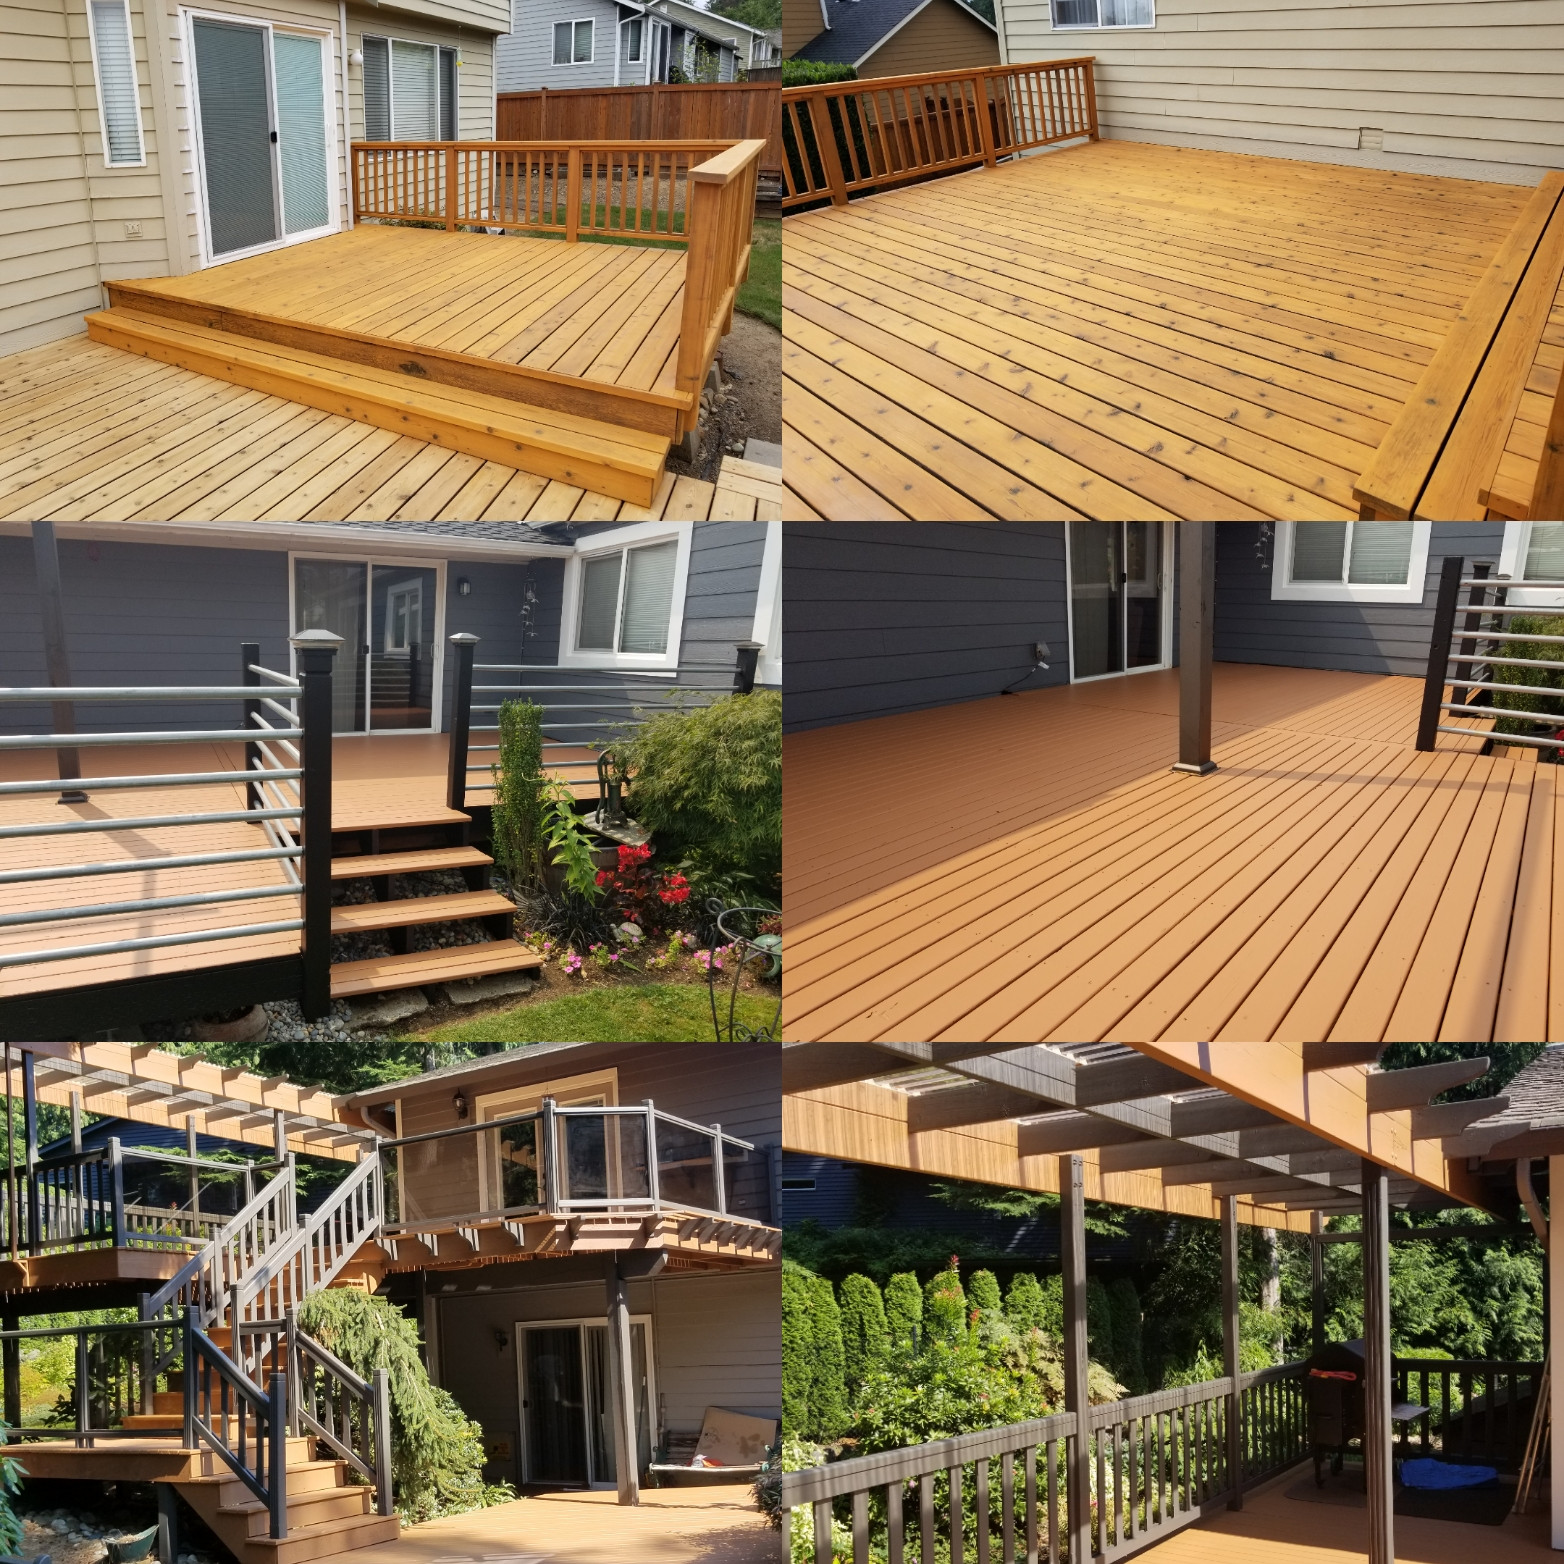 Deck Painting/Staining